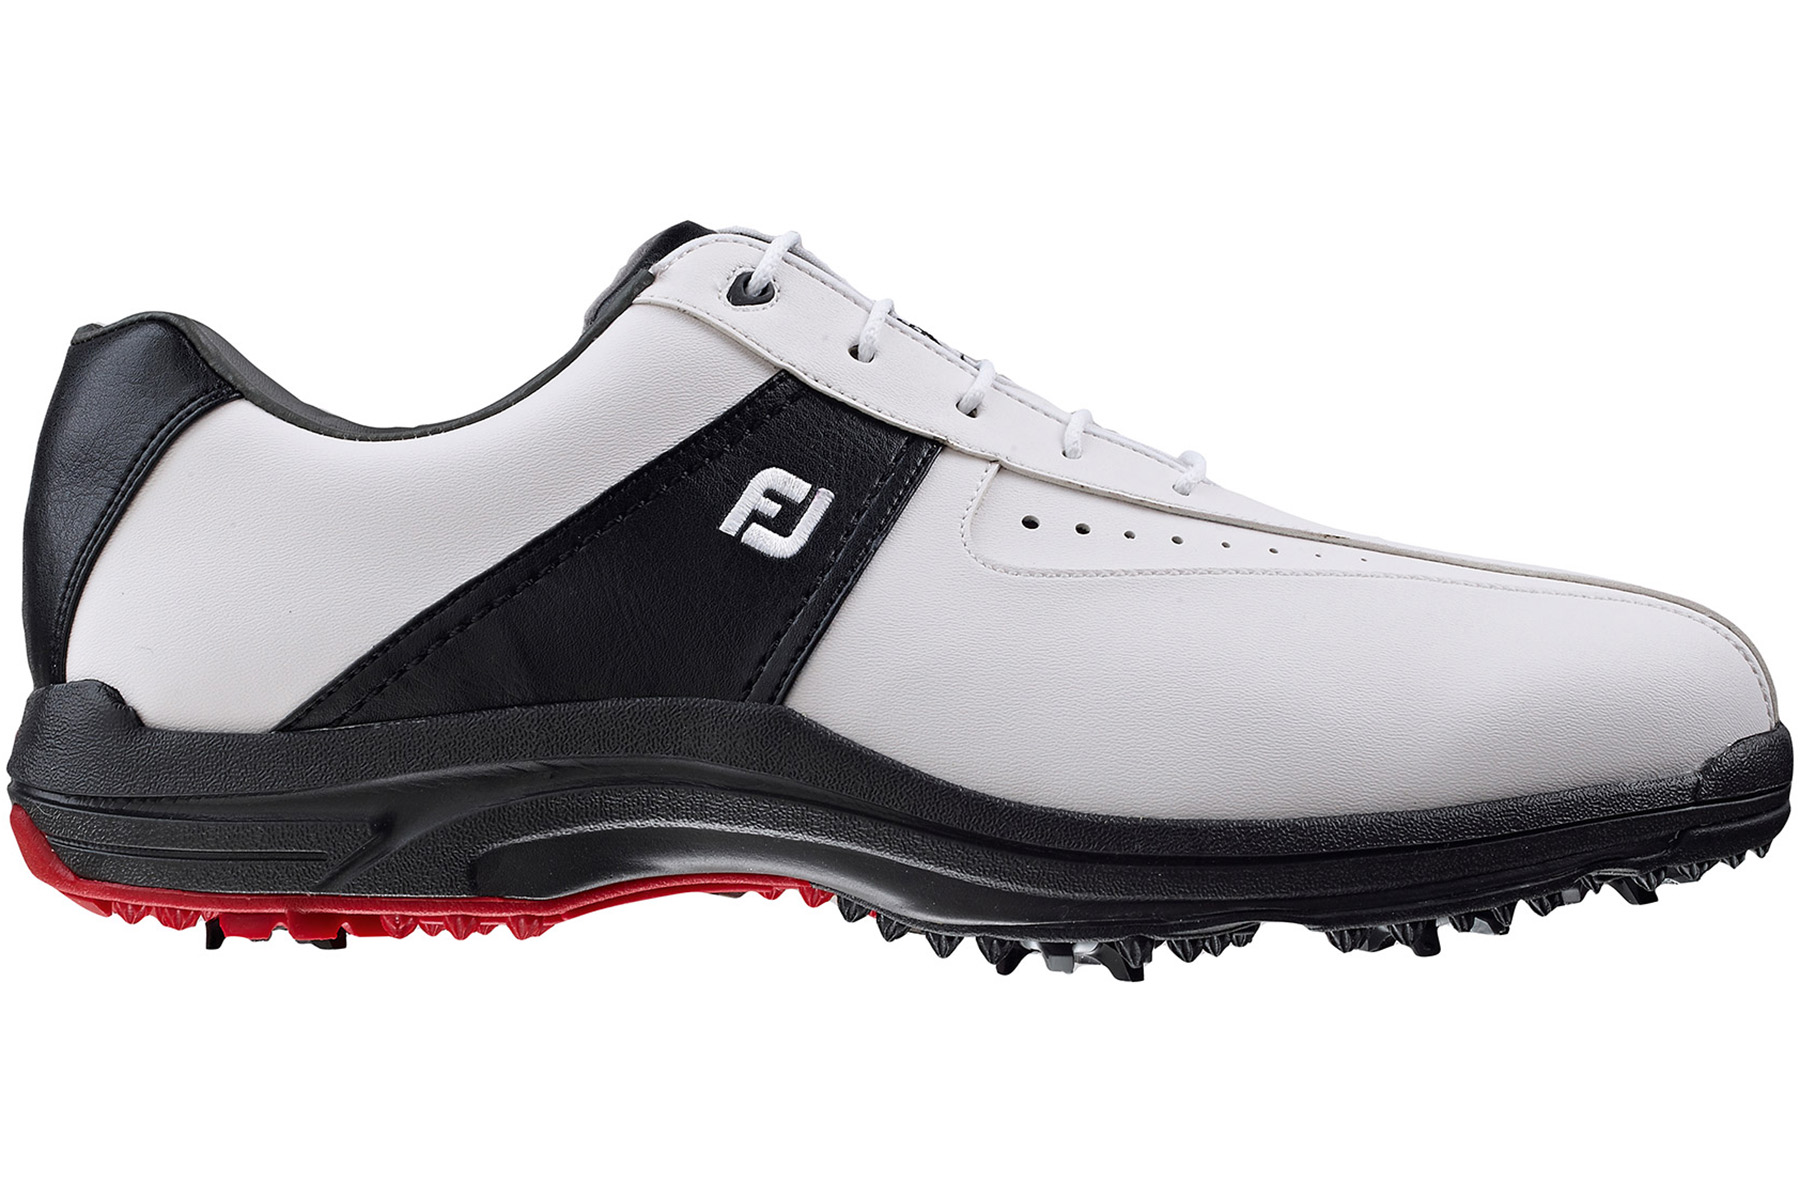 Where To Buy Footjoy Golf Shoes